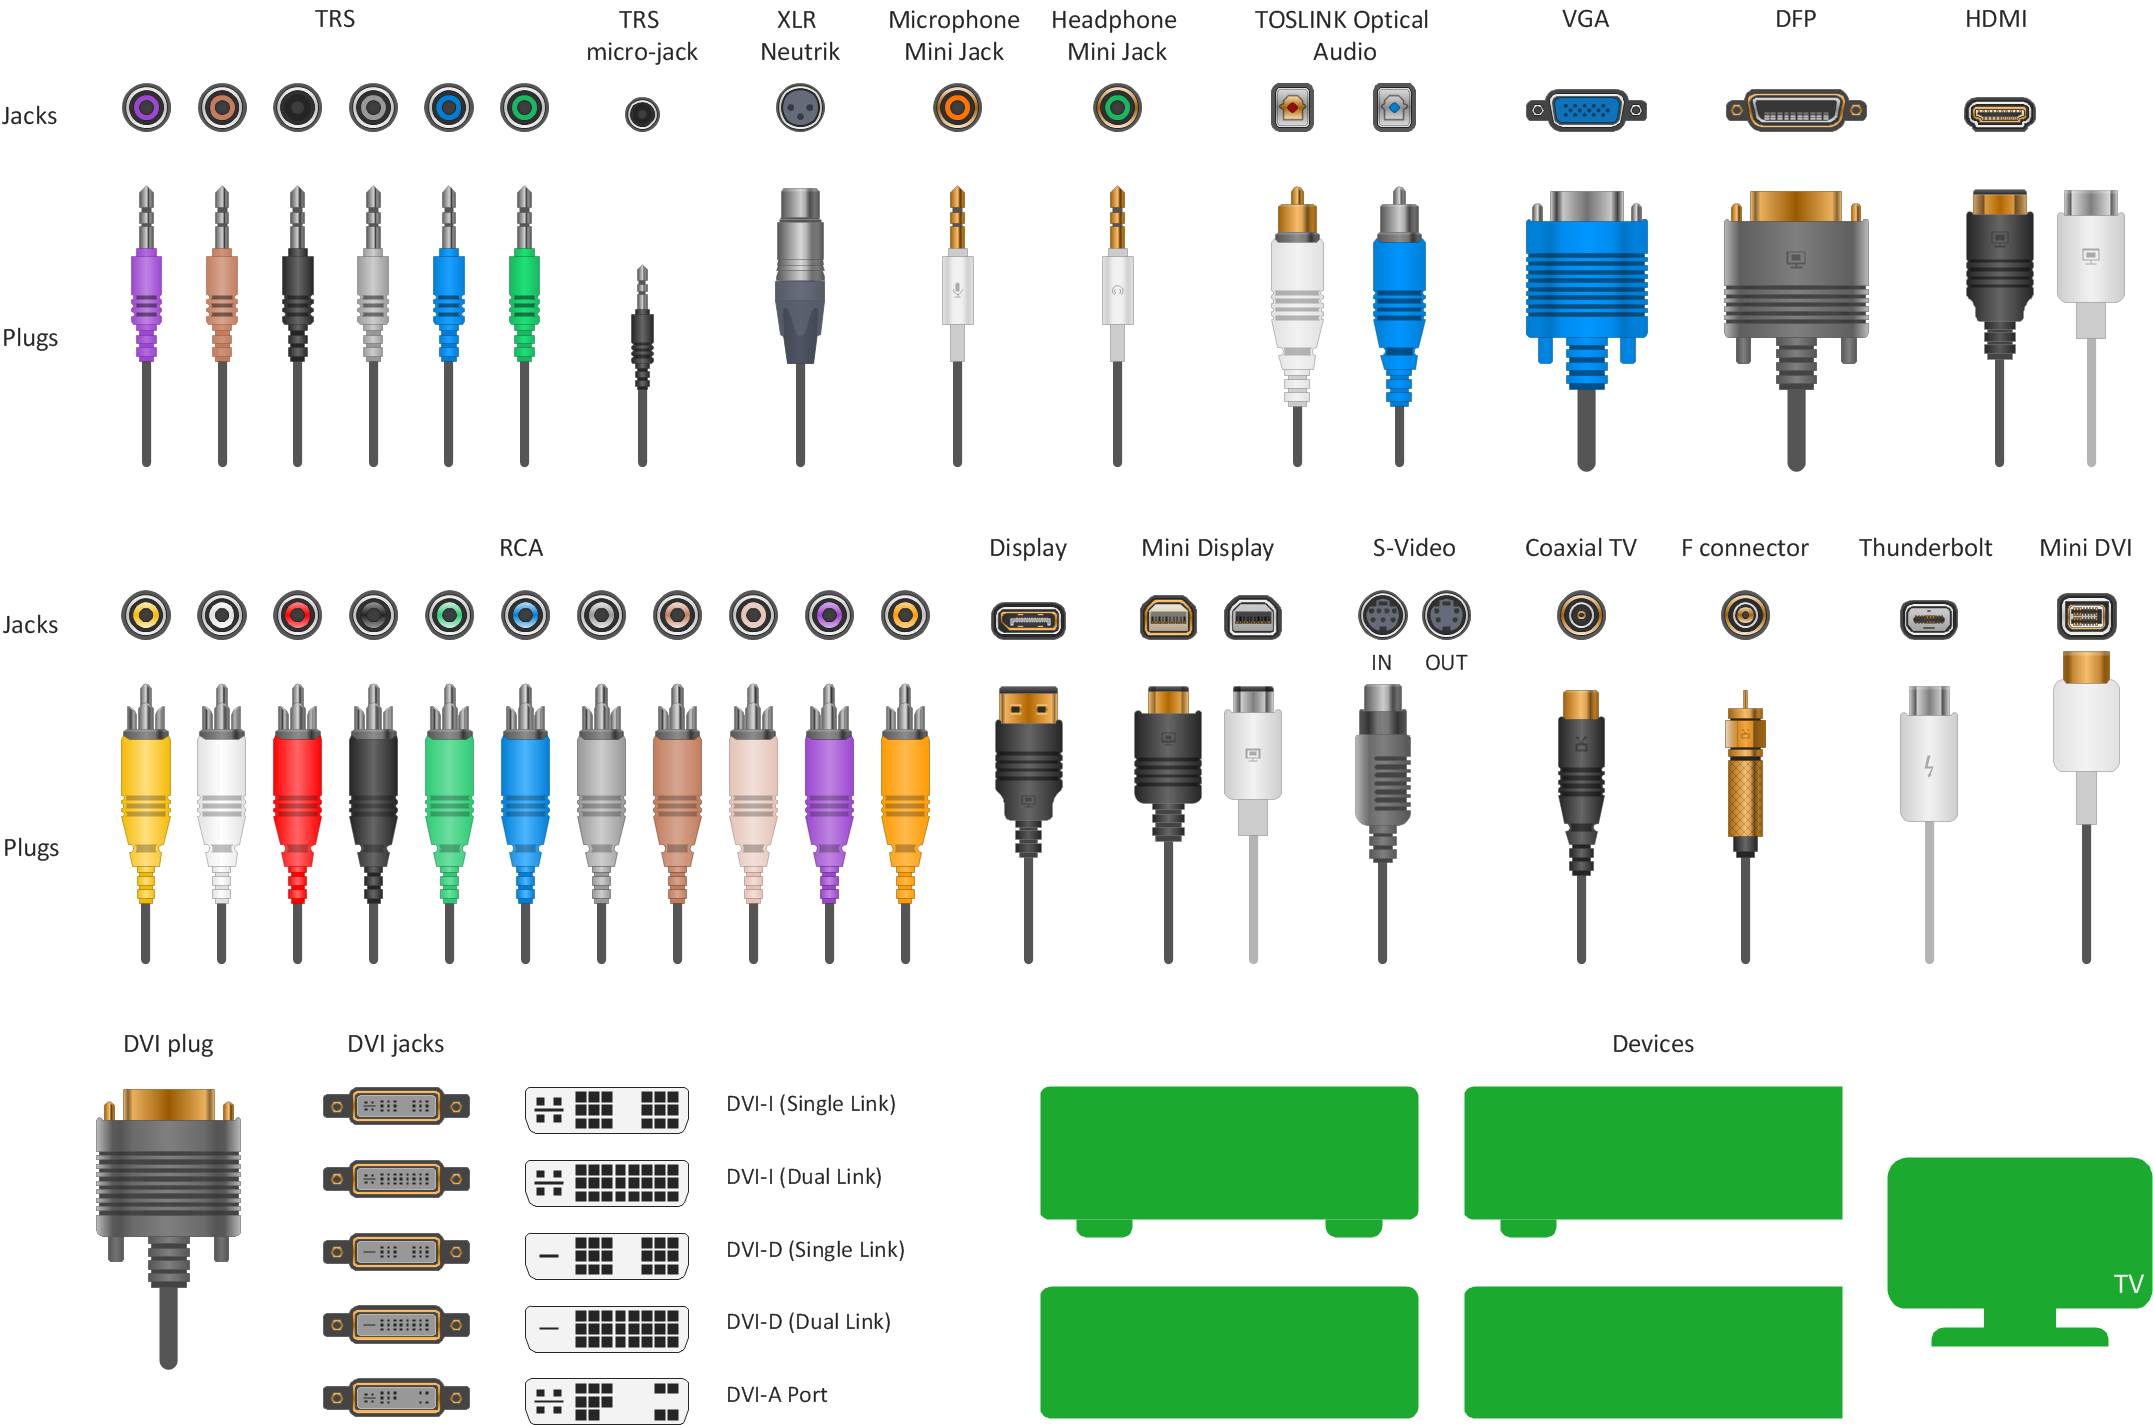 Vector stencils Audio video connectors audio visual connectors types audio and video connections s video cable wiring diagram at webbmarketing.co